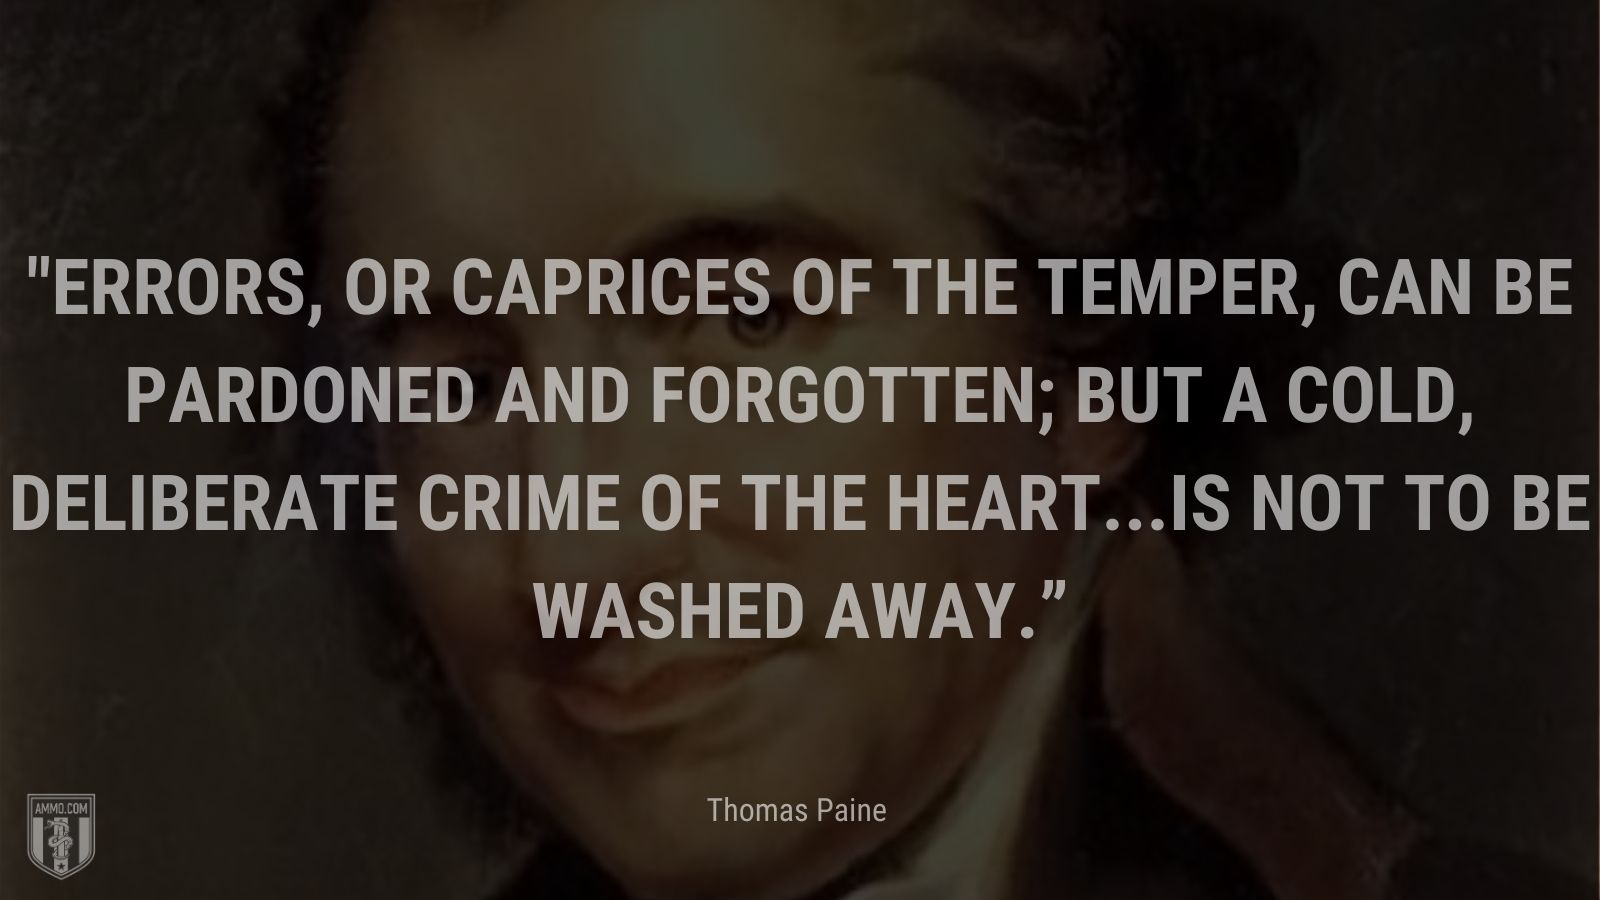 """""""Errors, or caprices of the temper, can be pardoned and forgotten; but a cold, deliberate crime of the heart...is not to be washed away."""" - Thomas Paine"""